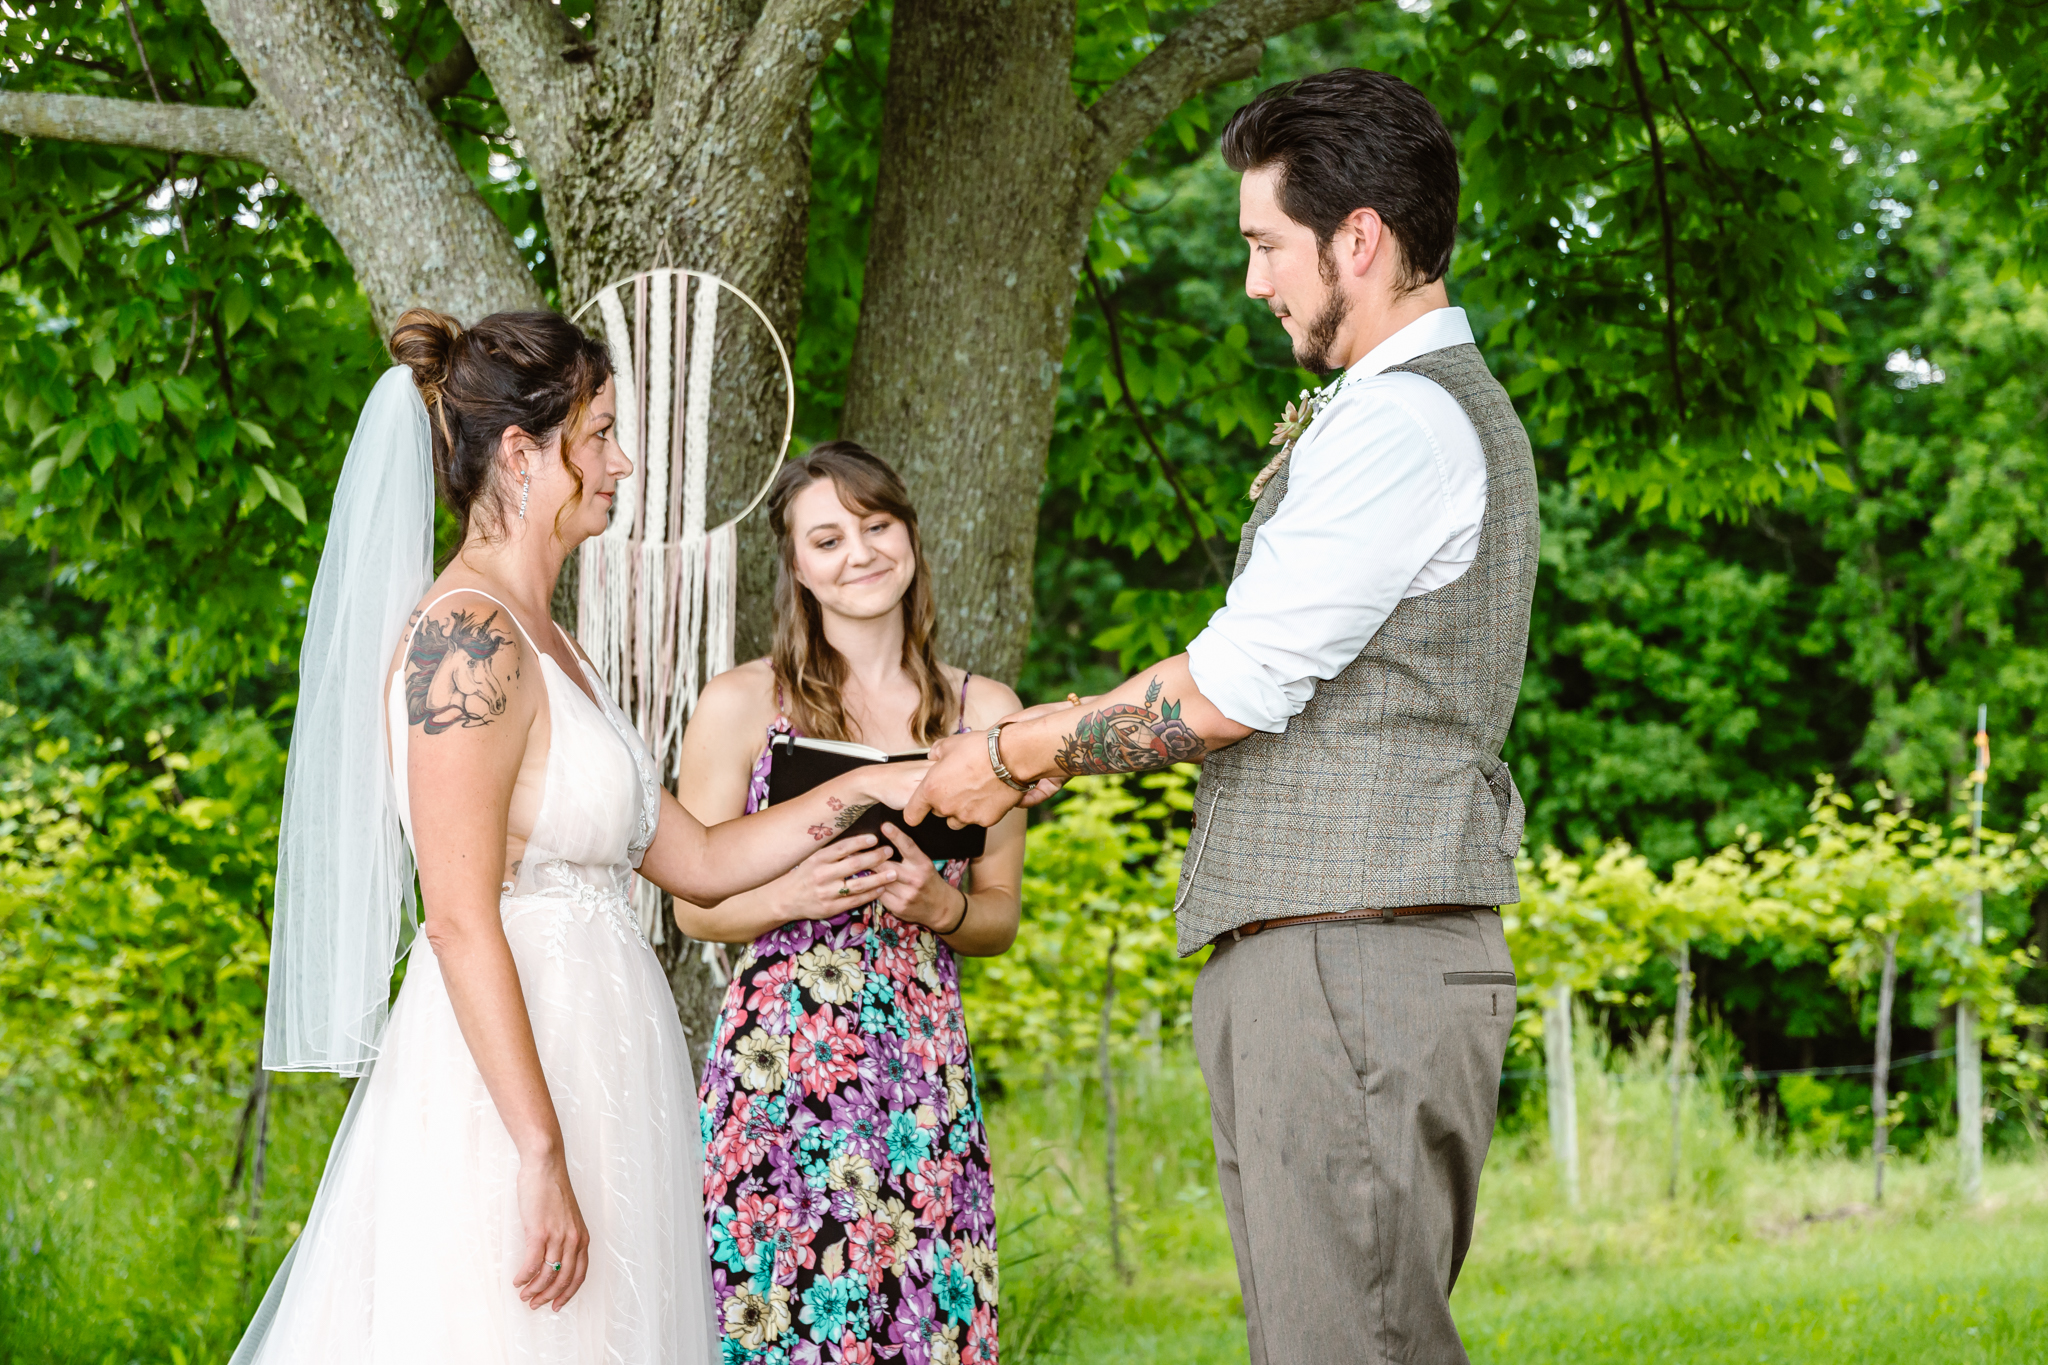 Duffy-Parsons-Wedding-Ceremony-WebSize-41.jpg